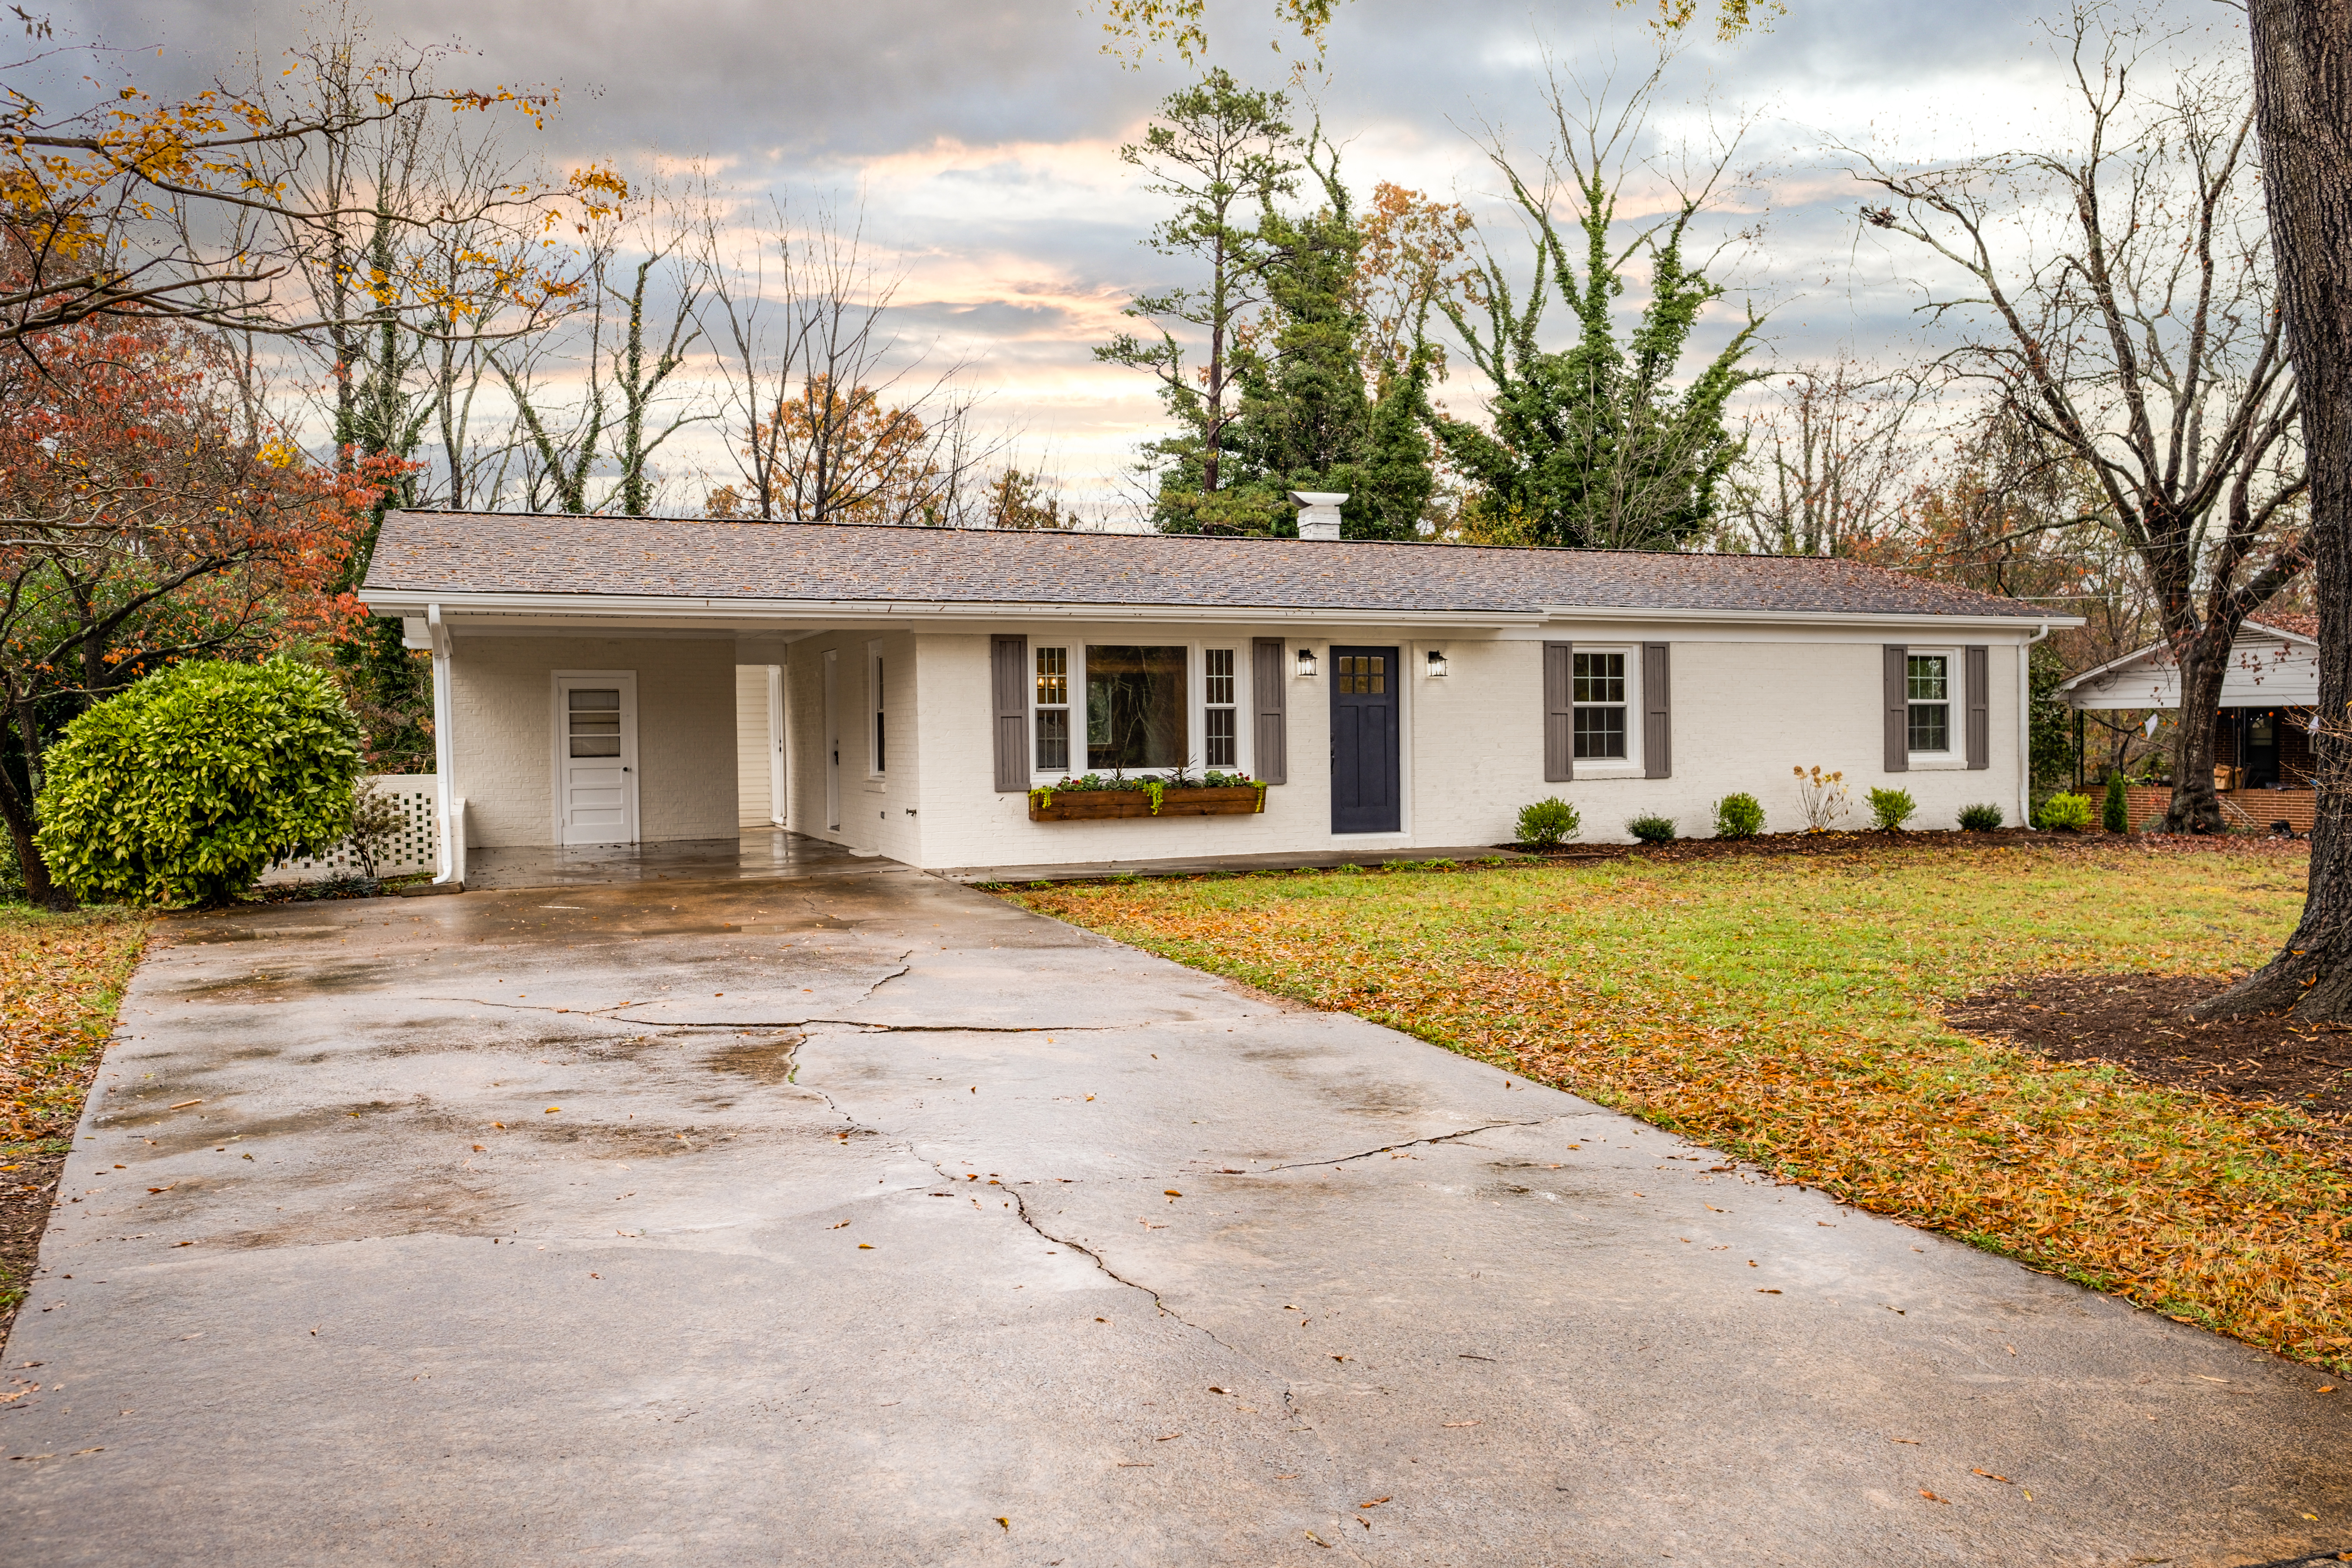 SOLD - 1054 17th Avenue, Hickory NC 28601